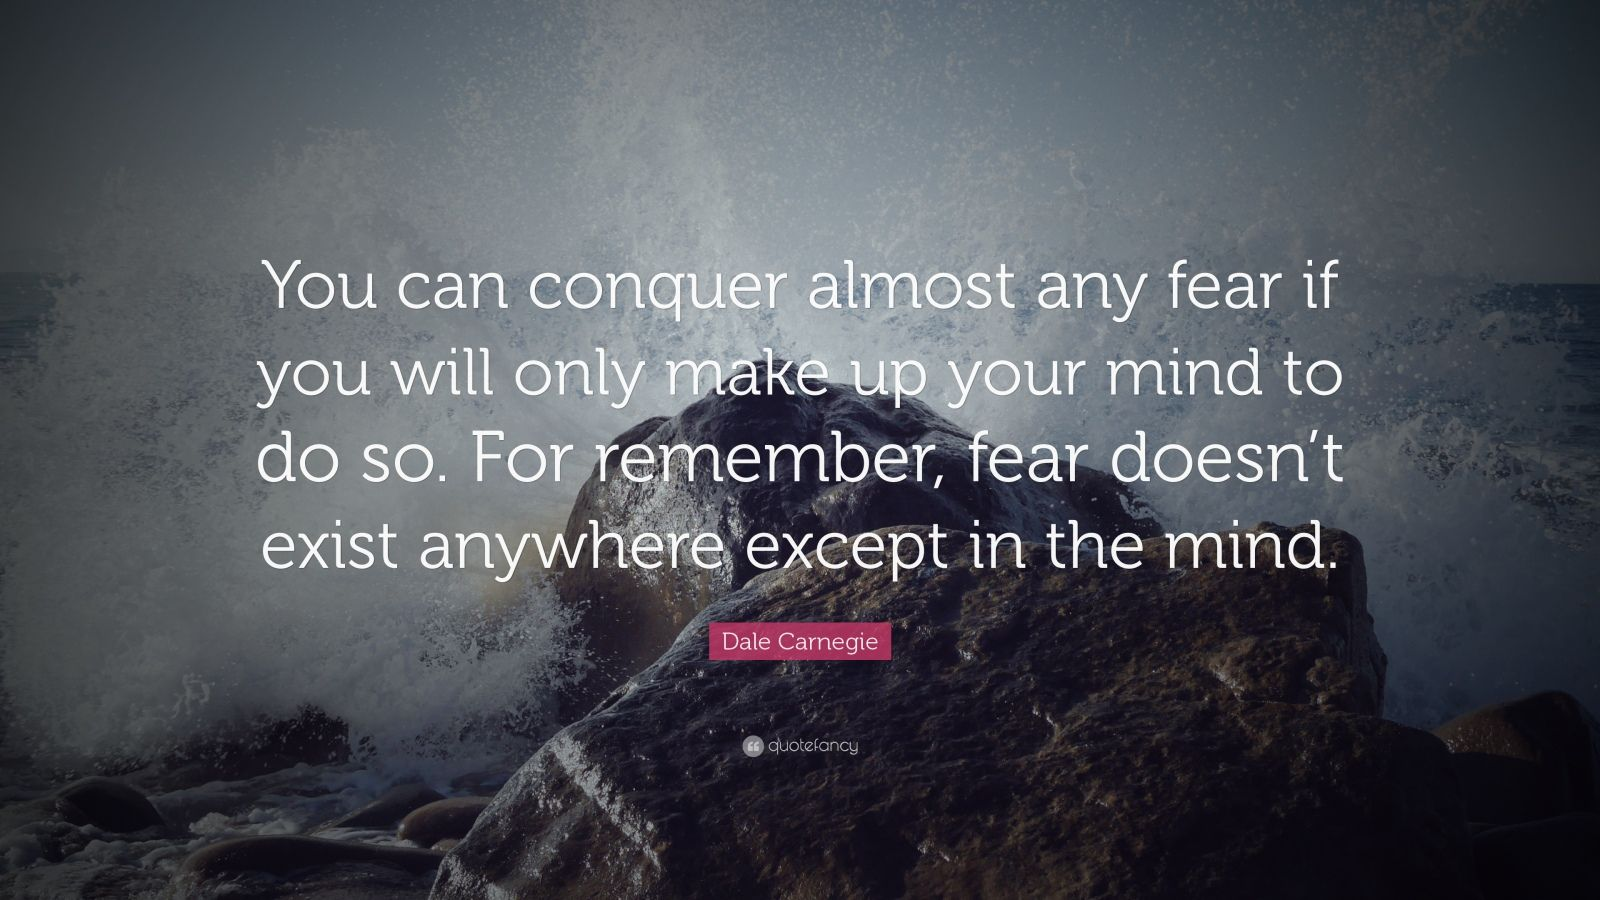 "Dale Carnegie Quote: ""You can conquer almost any fear if you will only make up your mind to do so. For remember, fear doesn't exist anywhere except in the mind."""